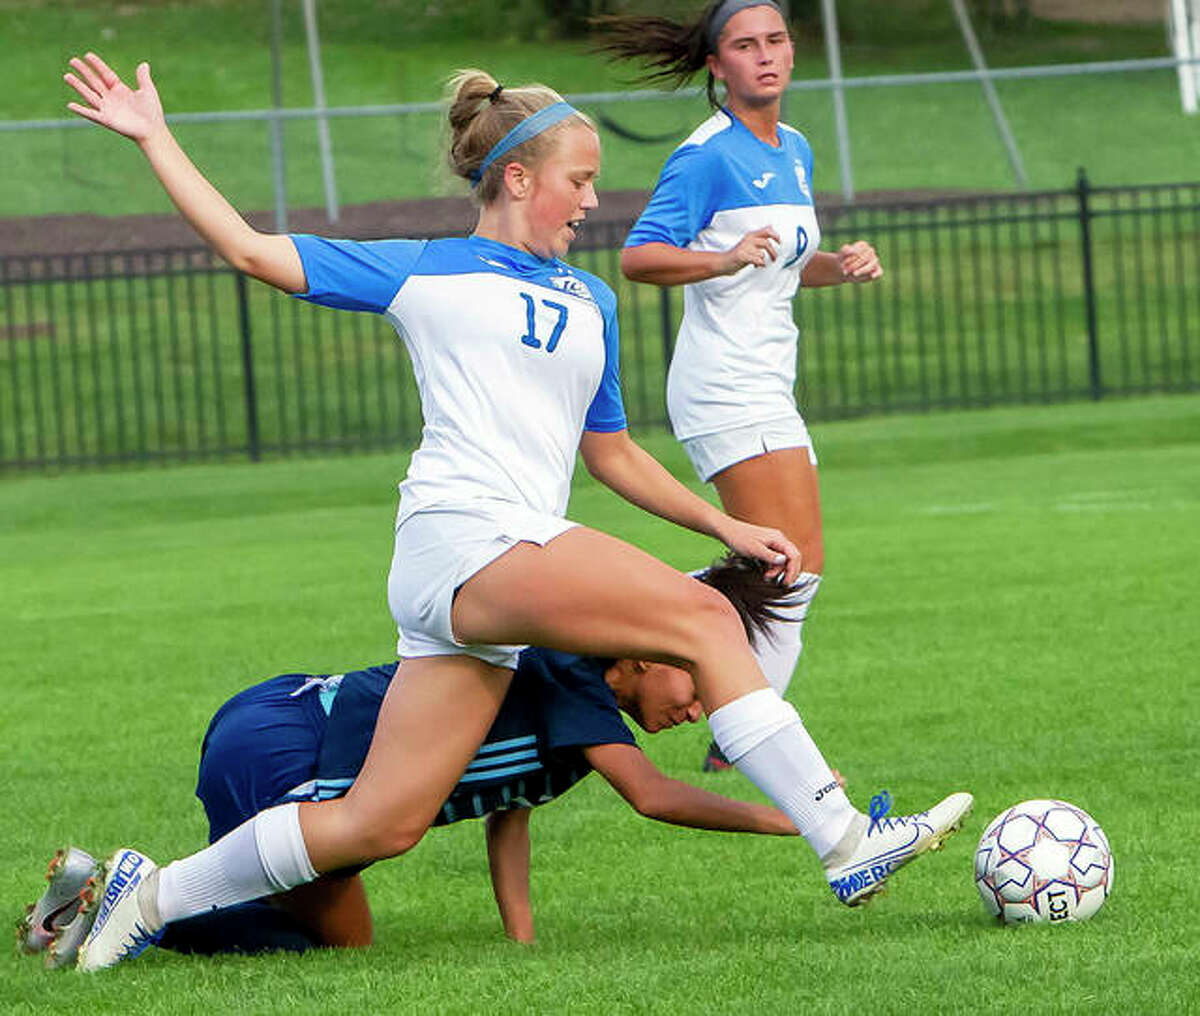 LCCC's Olivia Mouser (17), a freshman from Roxana, battles with St. Louis Community College's Sara Nishiyama during Wednesday's game at LCCC.